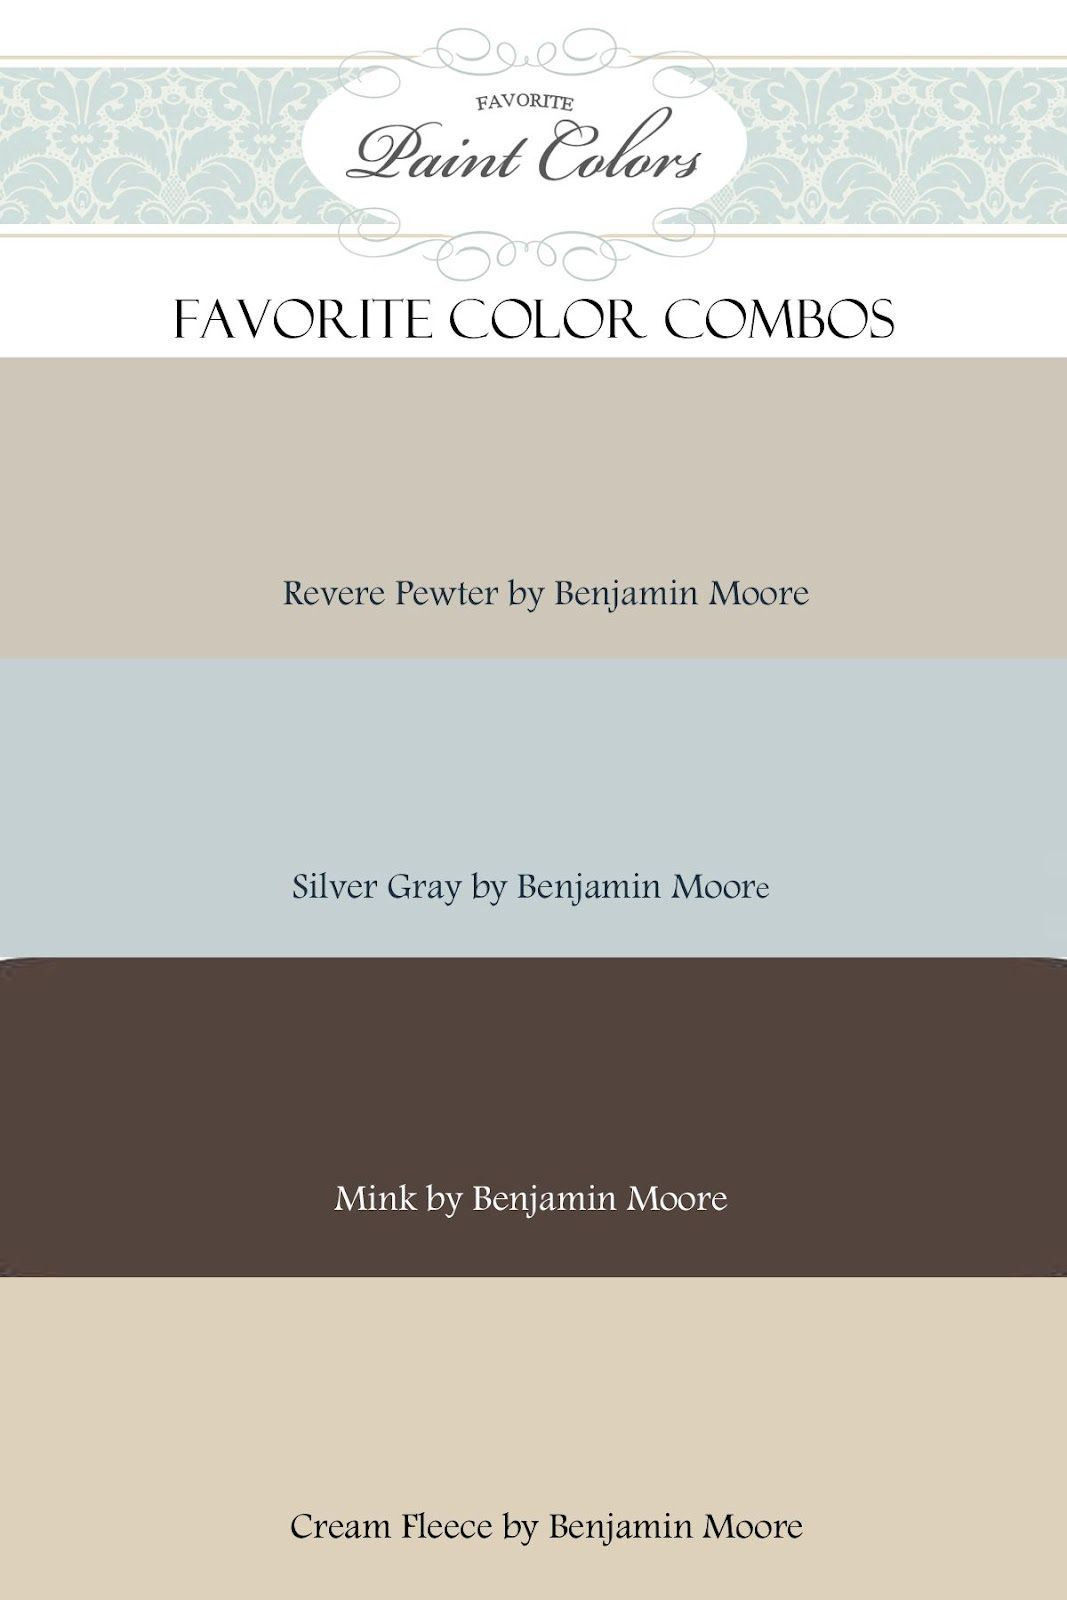 Other Colors I Love With Revere PewterBlue Echo By BMHampshire Gray BMWoodmont Cream BMAND Wanted To Tell You Some Good News